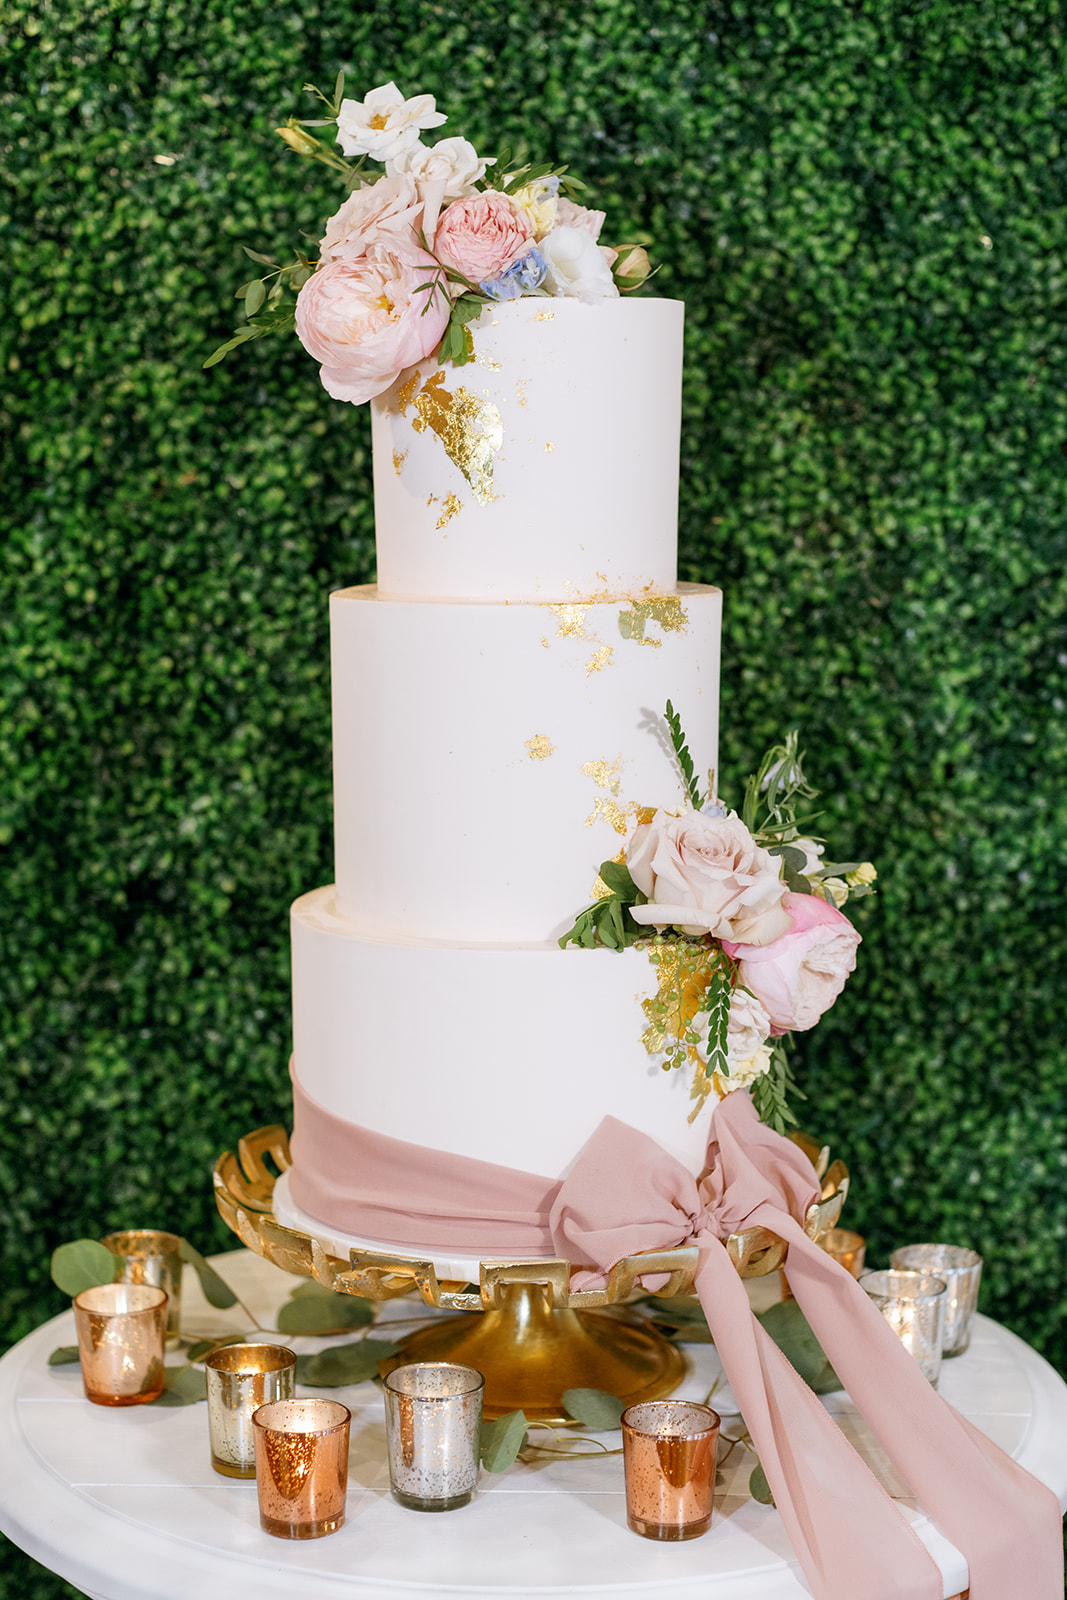 three tiered white frosted wedding cake with gold foil and pink floral accents